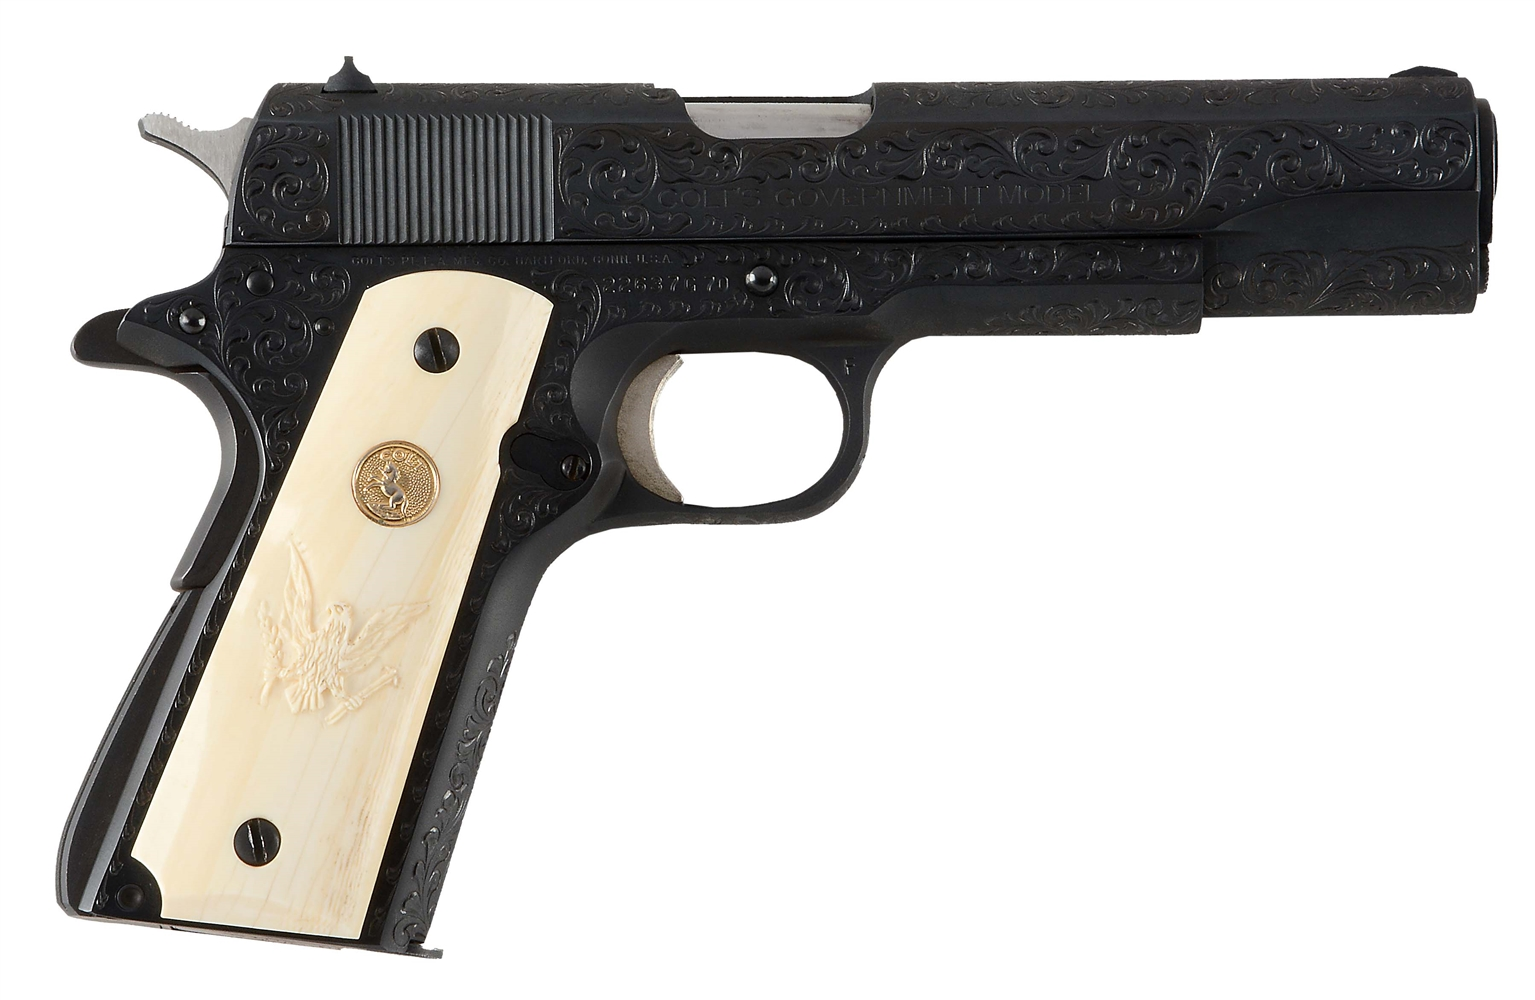 (M) CASED AND FACTORY ENGRAVED COLT MODEL 1911A1 SERIES 70 SEMI-AUTOMATIC PISTOL (1977).